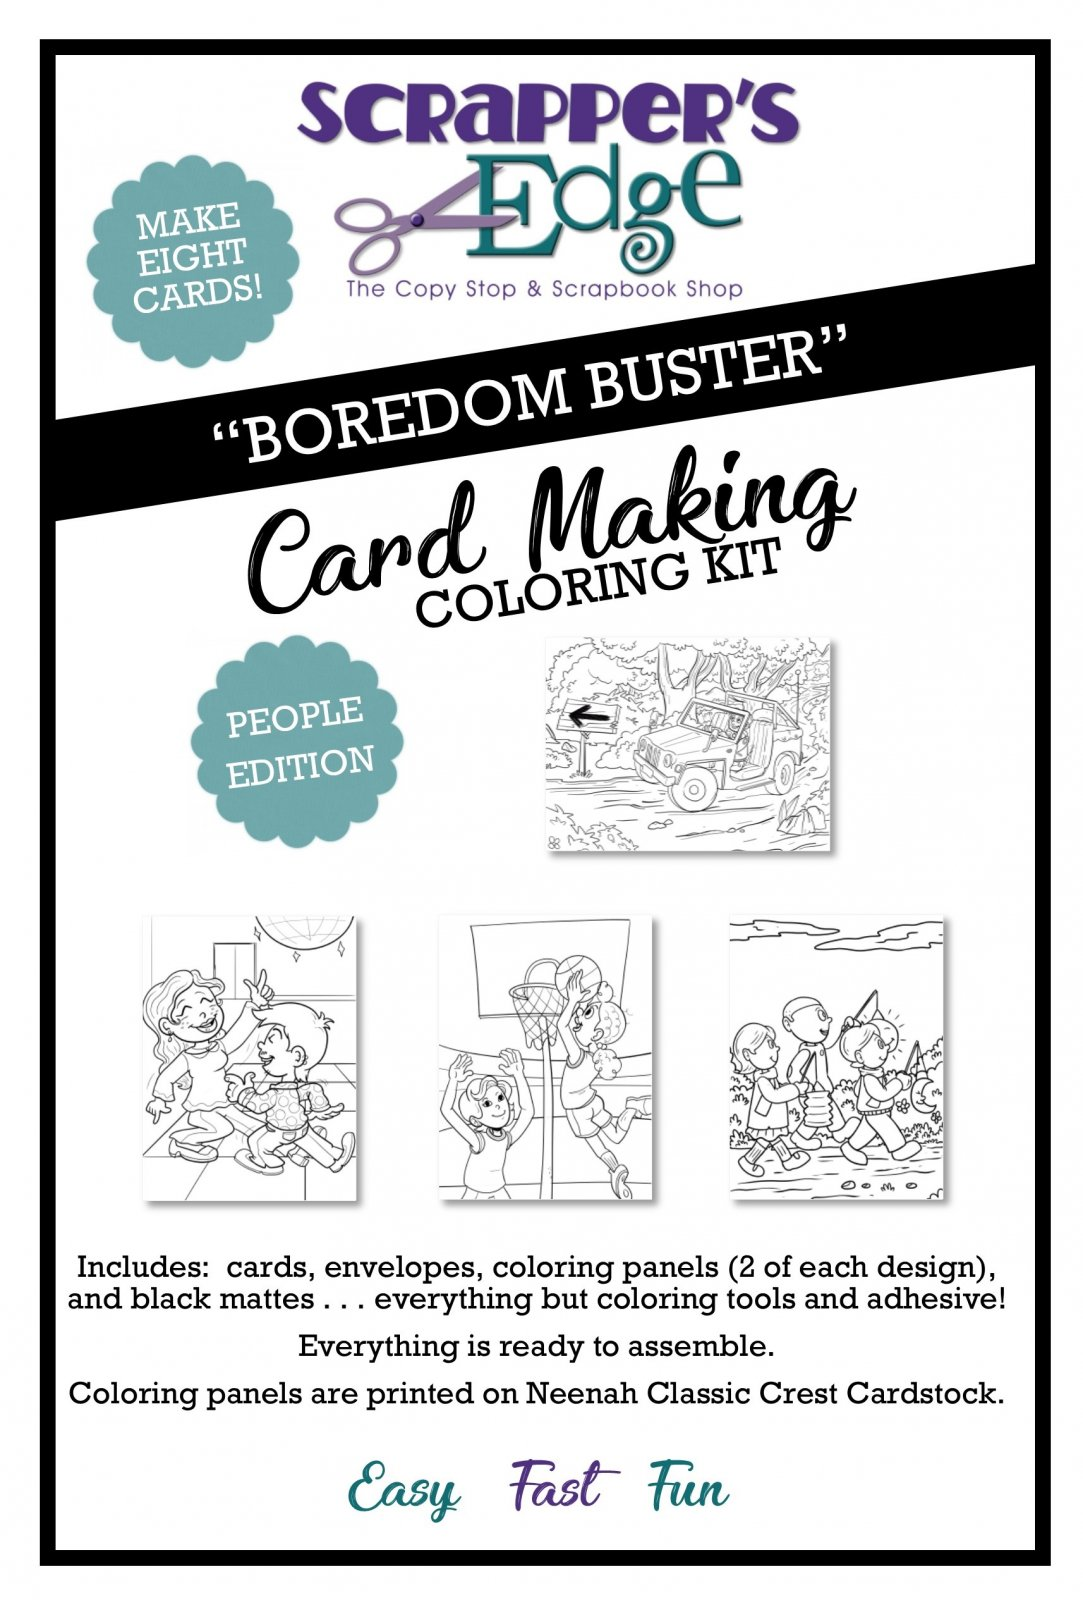 Boredom Buster Cardmaking Coloring Kit  -  PEOPLE edition